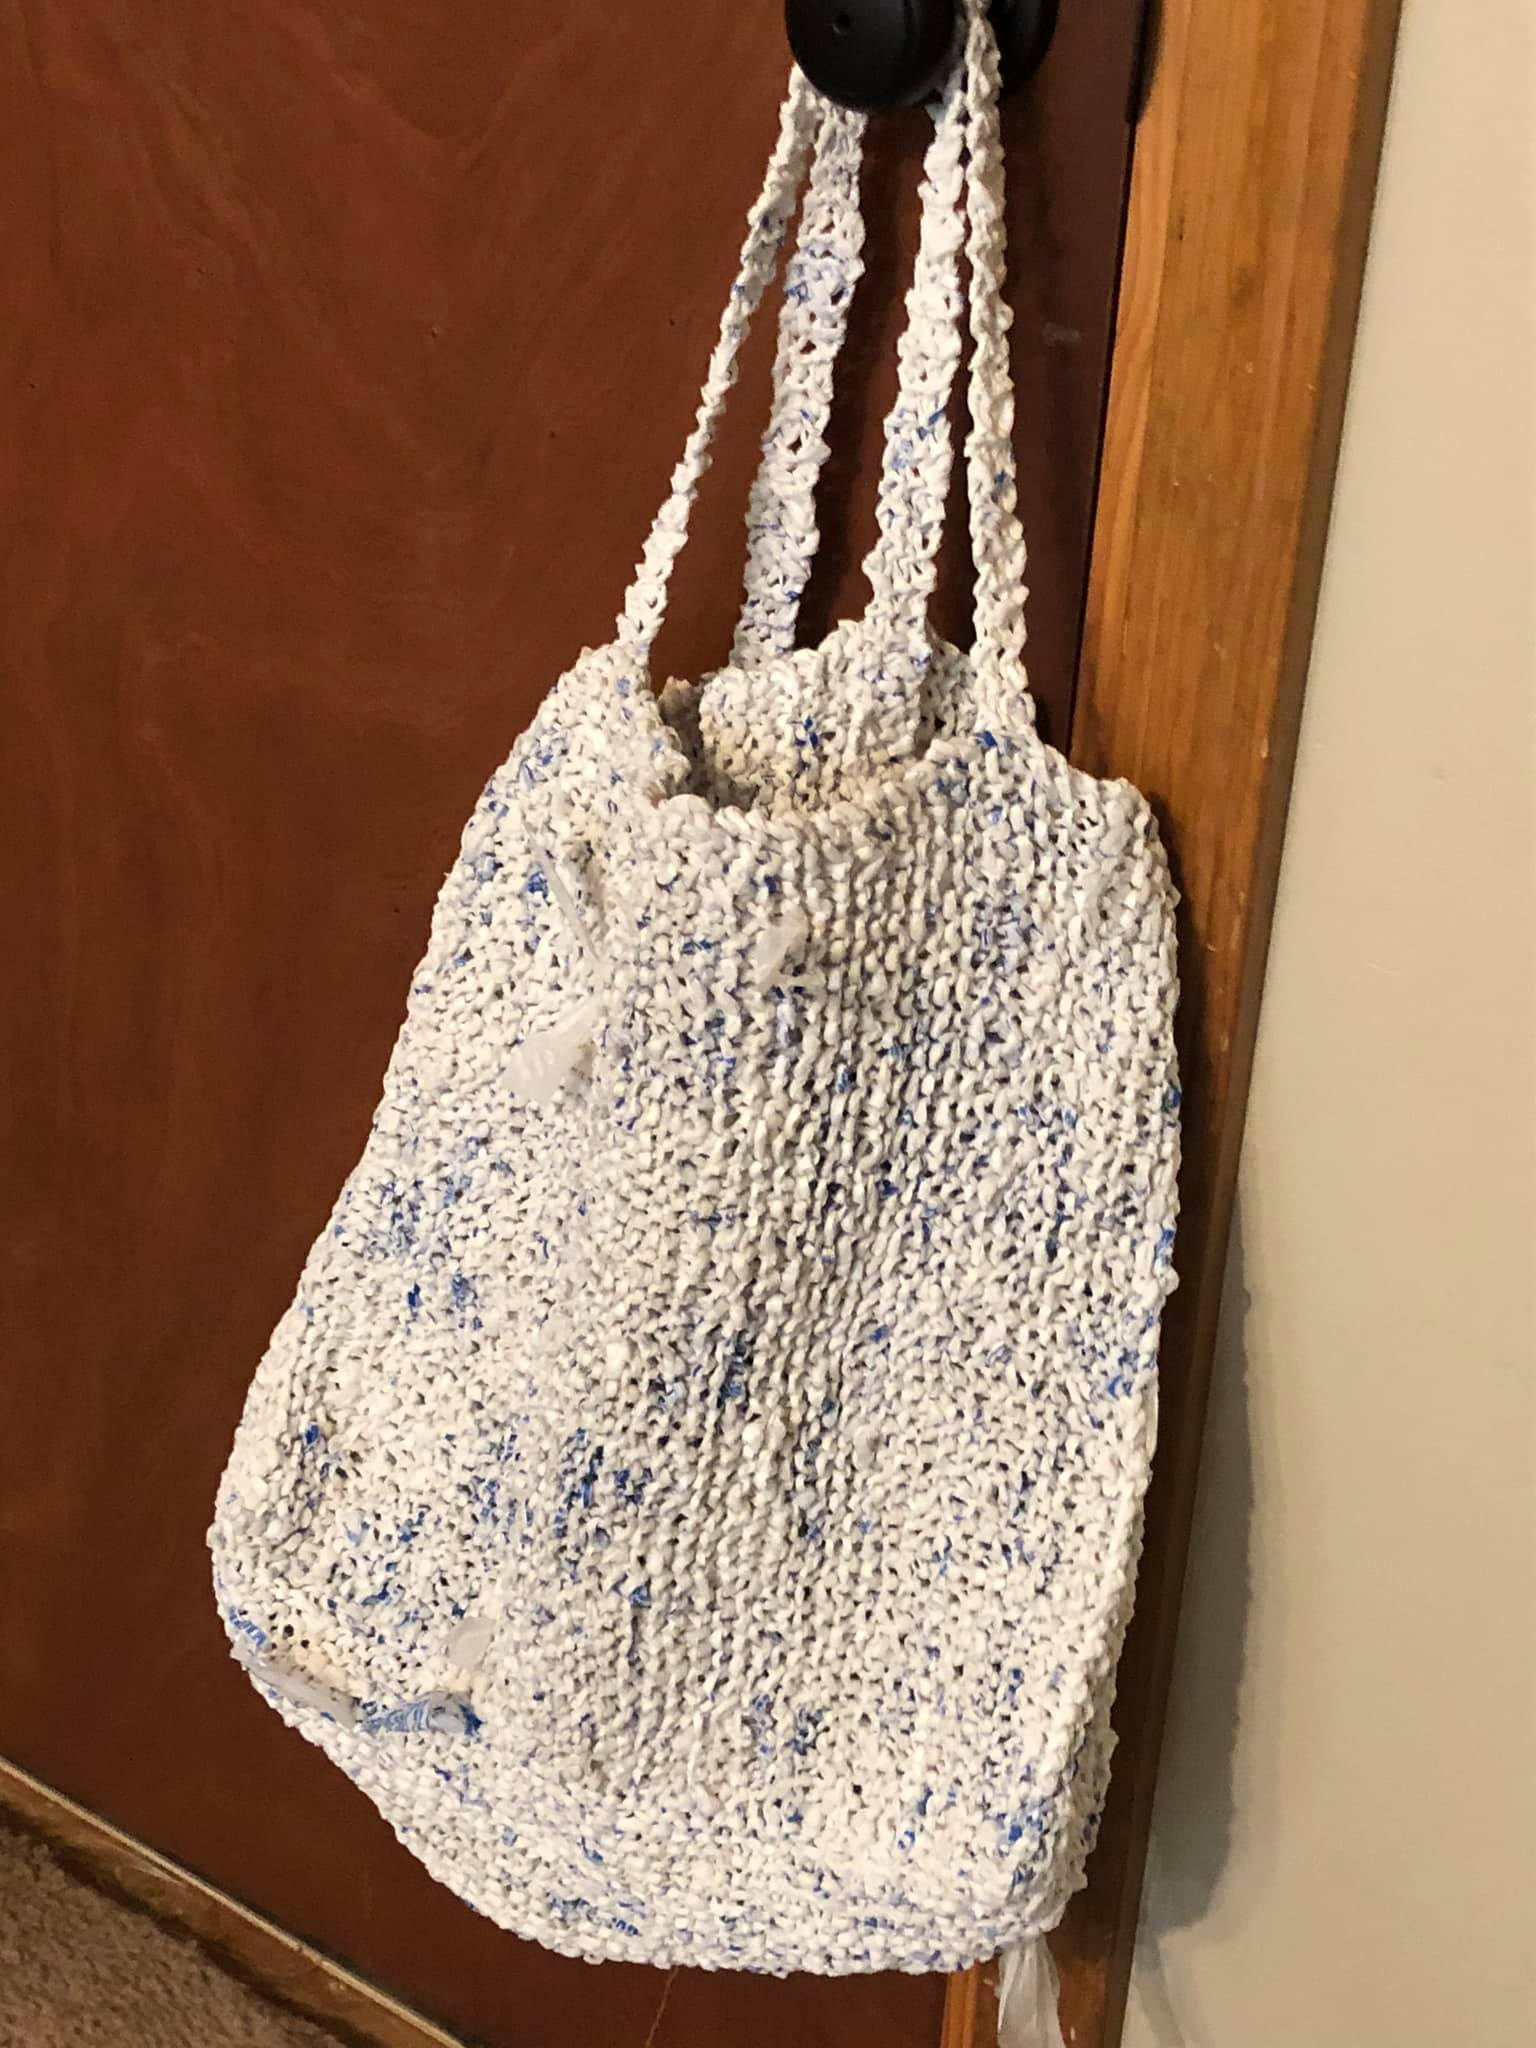 Plarn Projects: Reusable Grocery Bag - Free Knitting Pattern